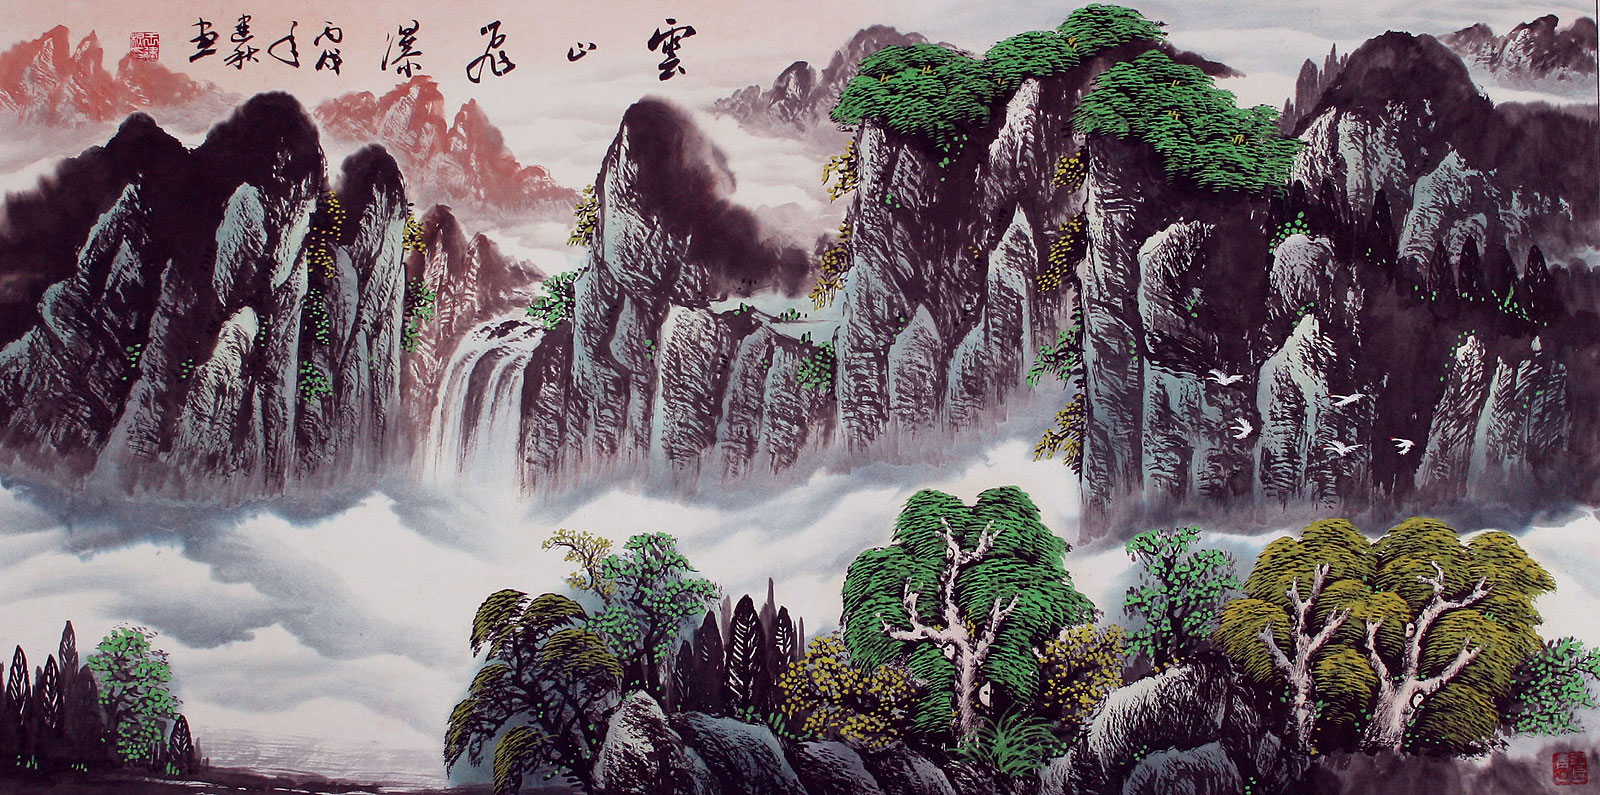 Cloudy Mountain Waterfall Asian Art Landscape Landscapes Of Asia Paintings Chinese Artwork